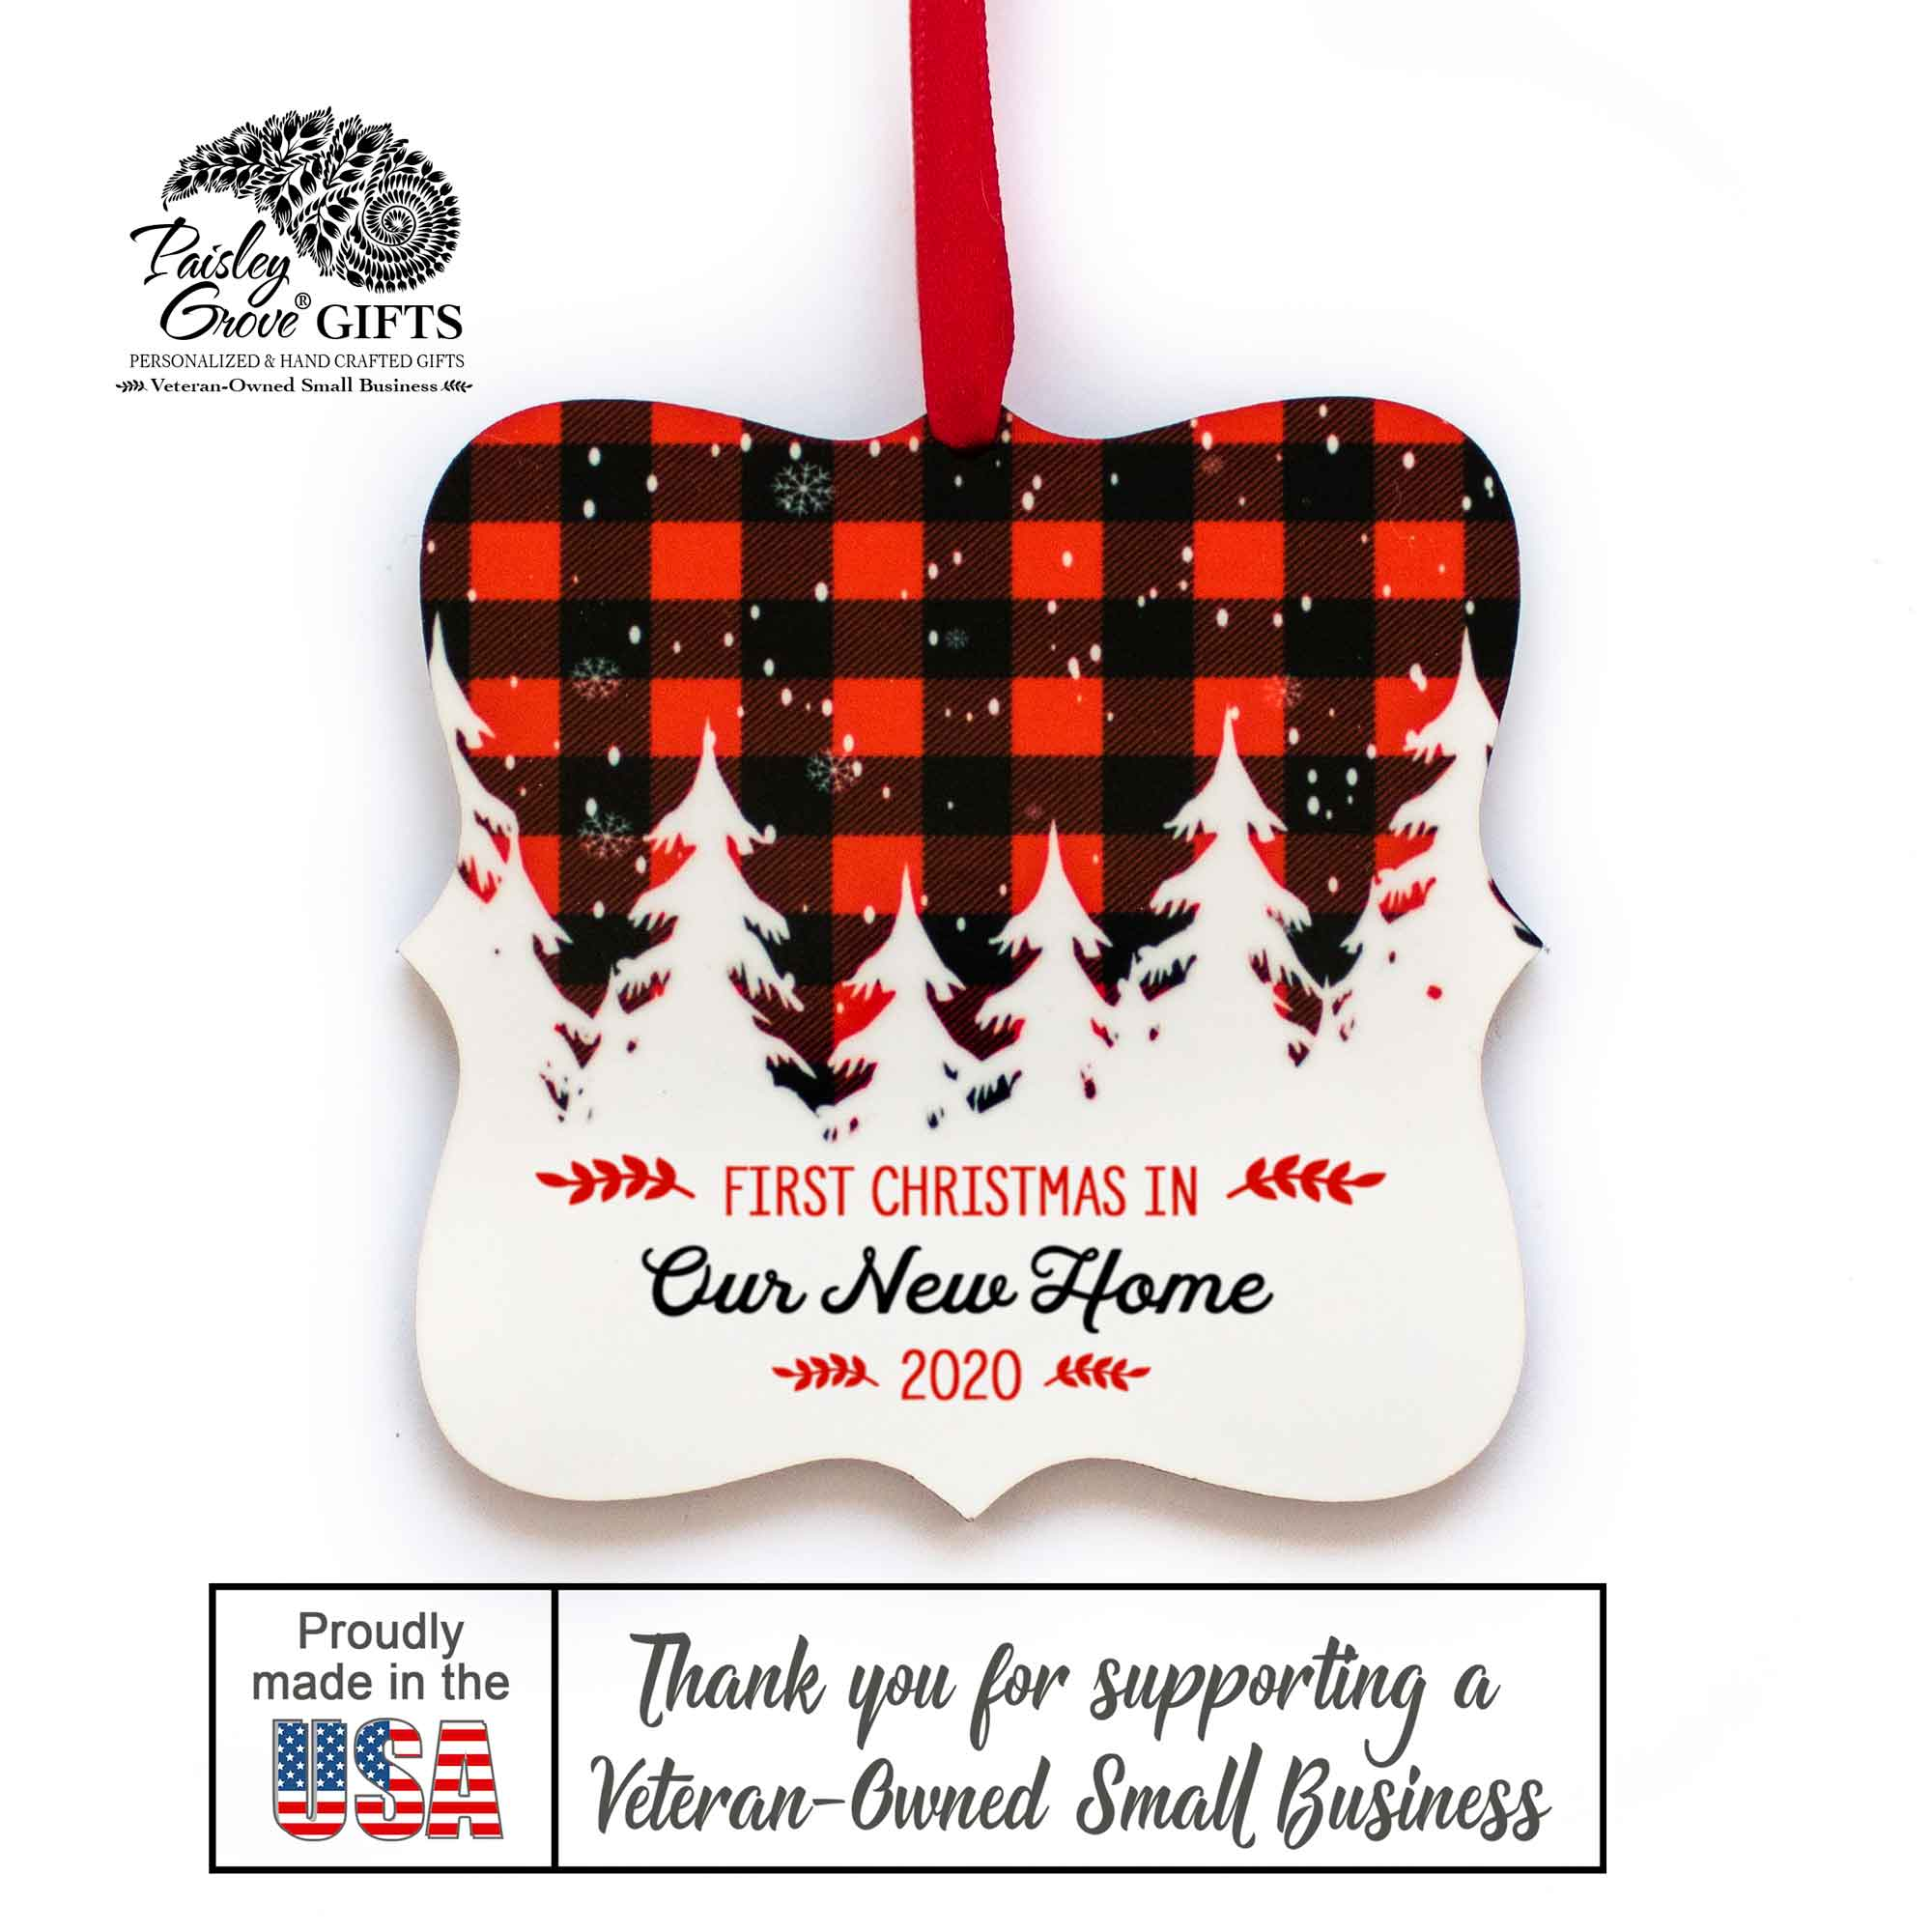 CopyrightPaisleyGroveGIFTS S502e New Grandma and Grandpa Christmas Ornament Gift Made in the USA